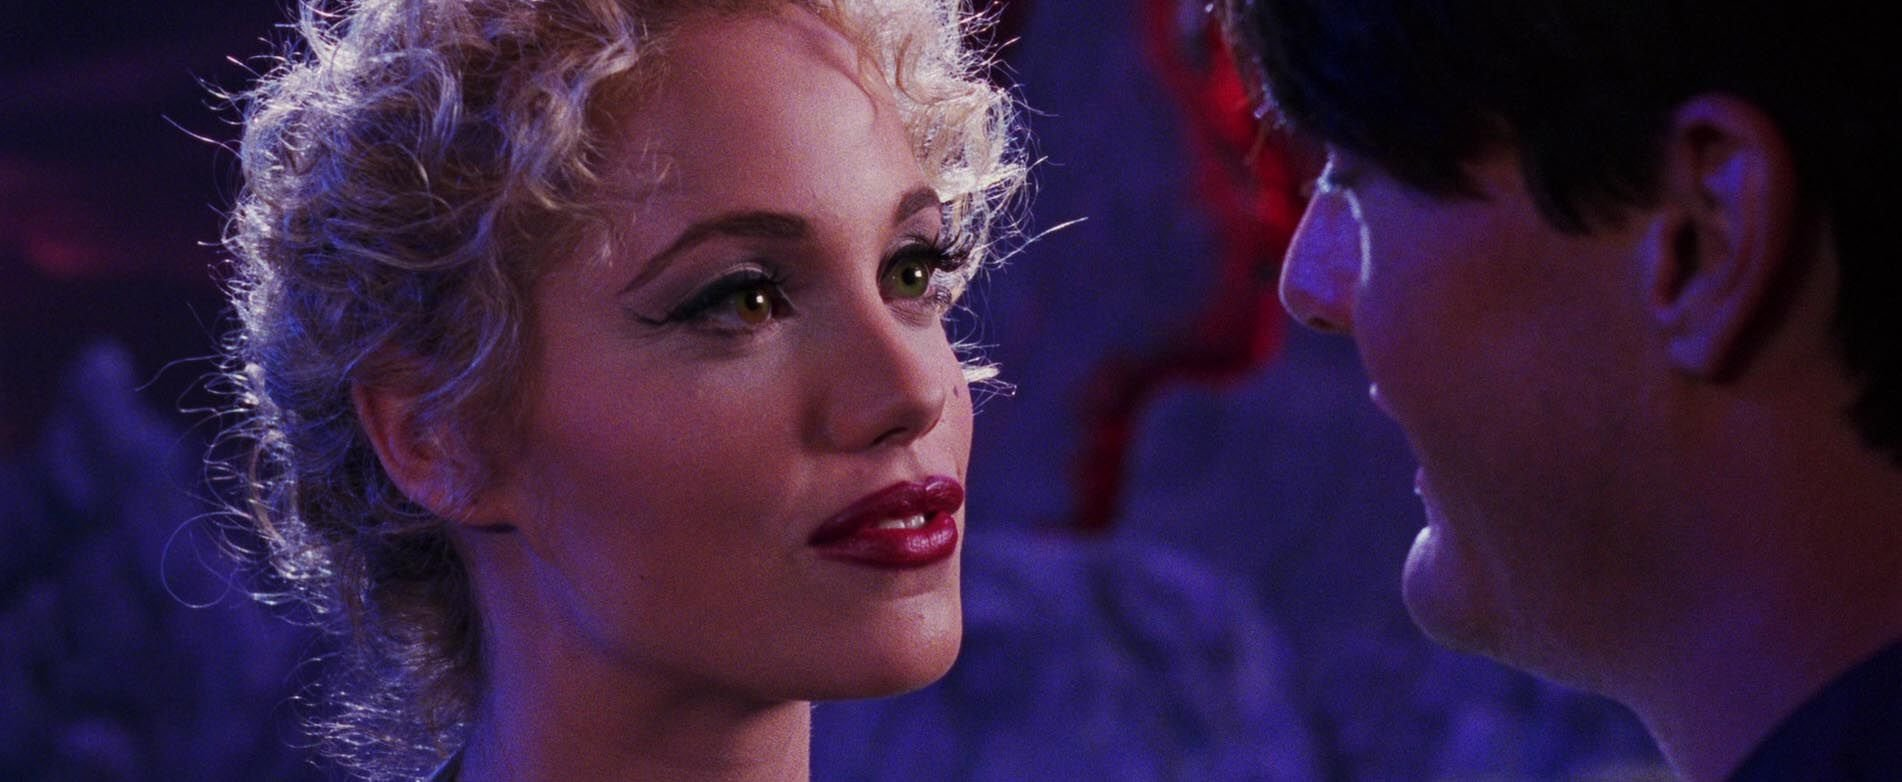 An image from Showgirls